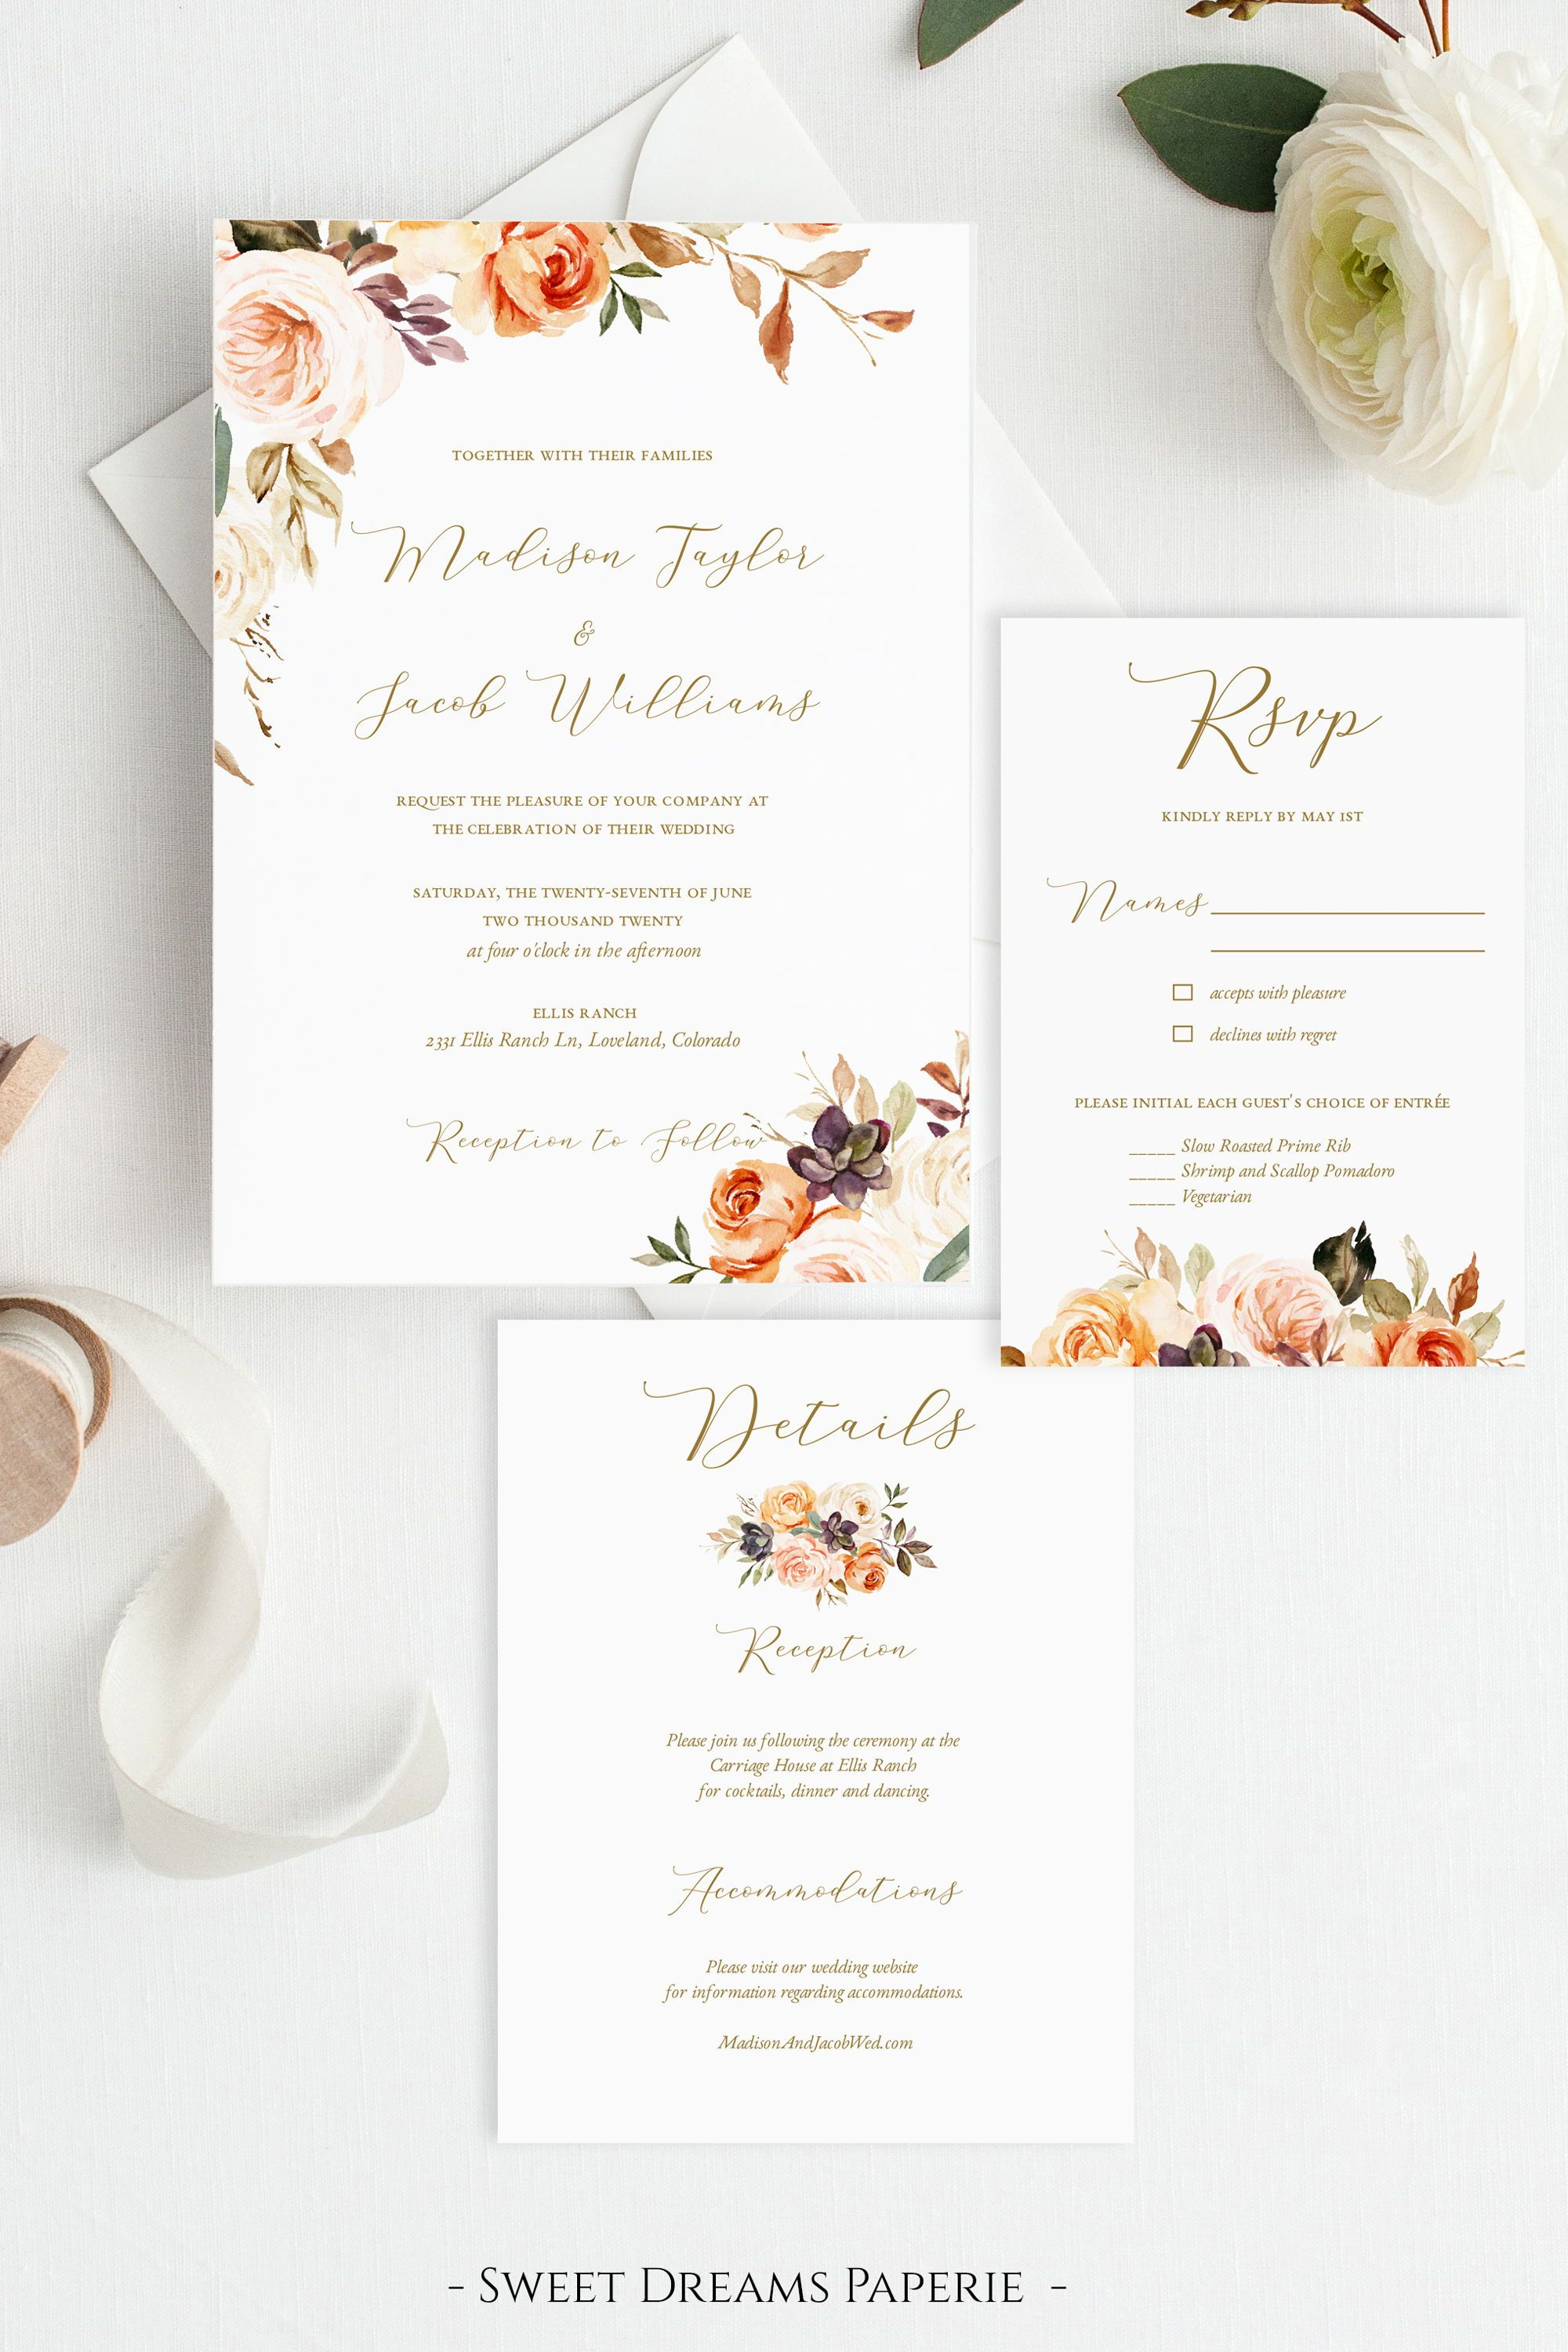 Fall Wedding Invitation Template Floral Wedding Invitation Etsy In 2020 Wedding Invitation Templates Fall Wedding Invitations Floral Wedding Invitations